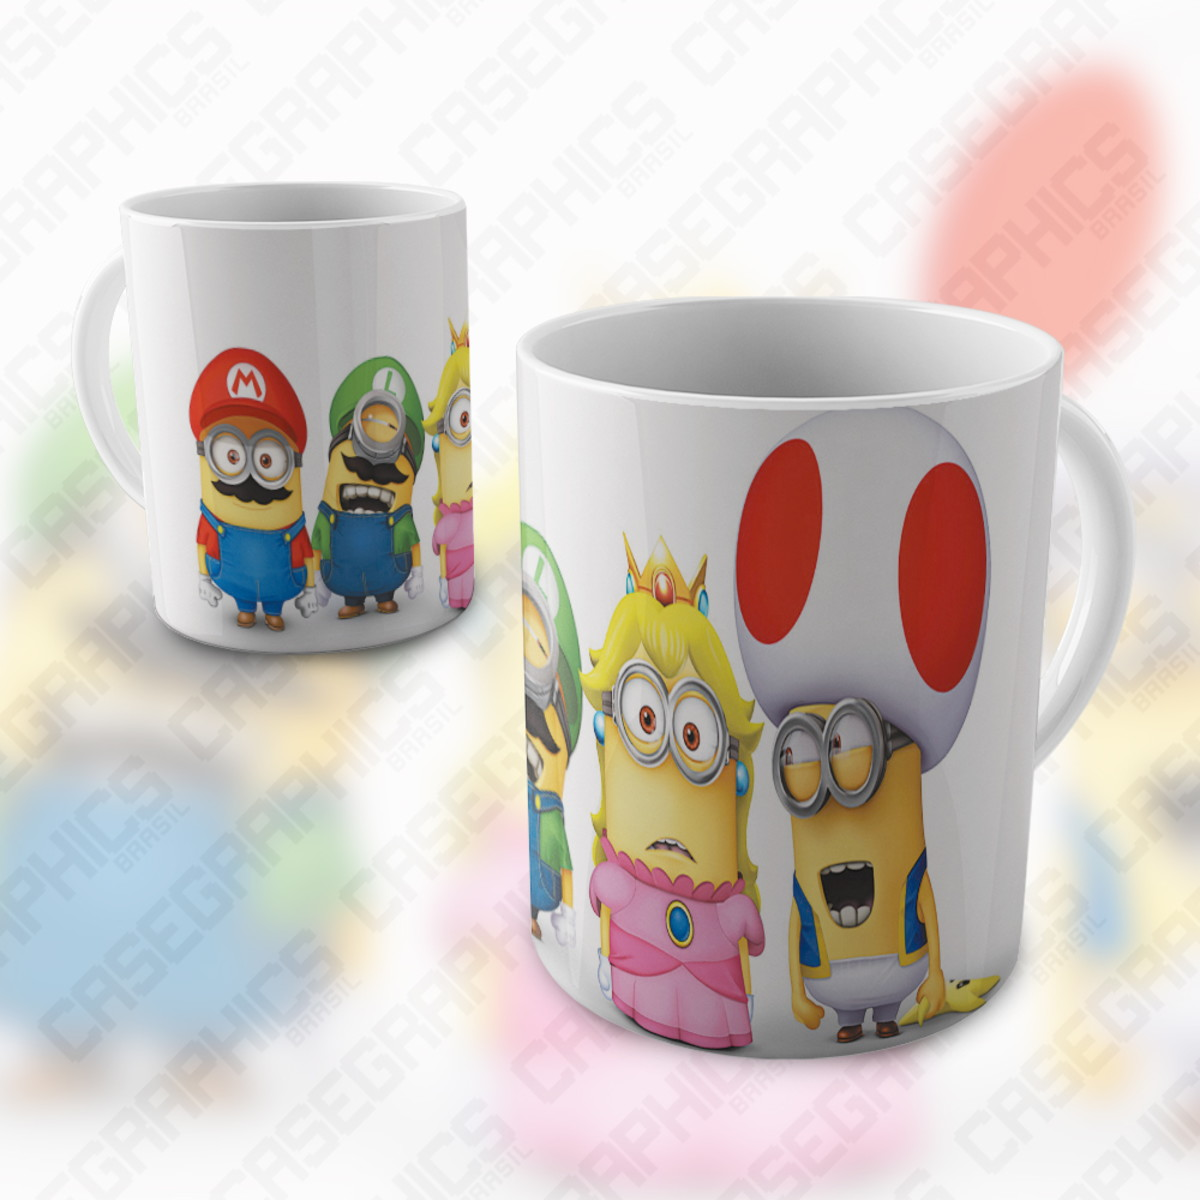 Caneca Super Mario Bros Minions Divertida Colorida Porcelana No